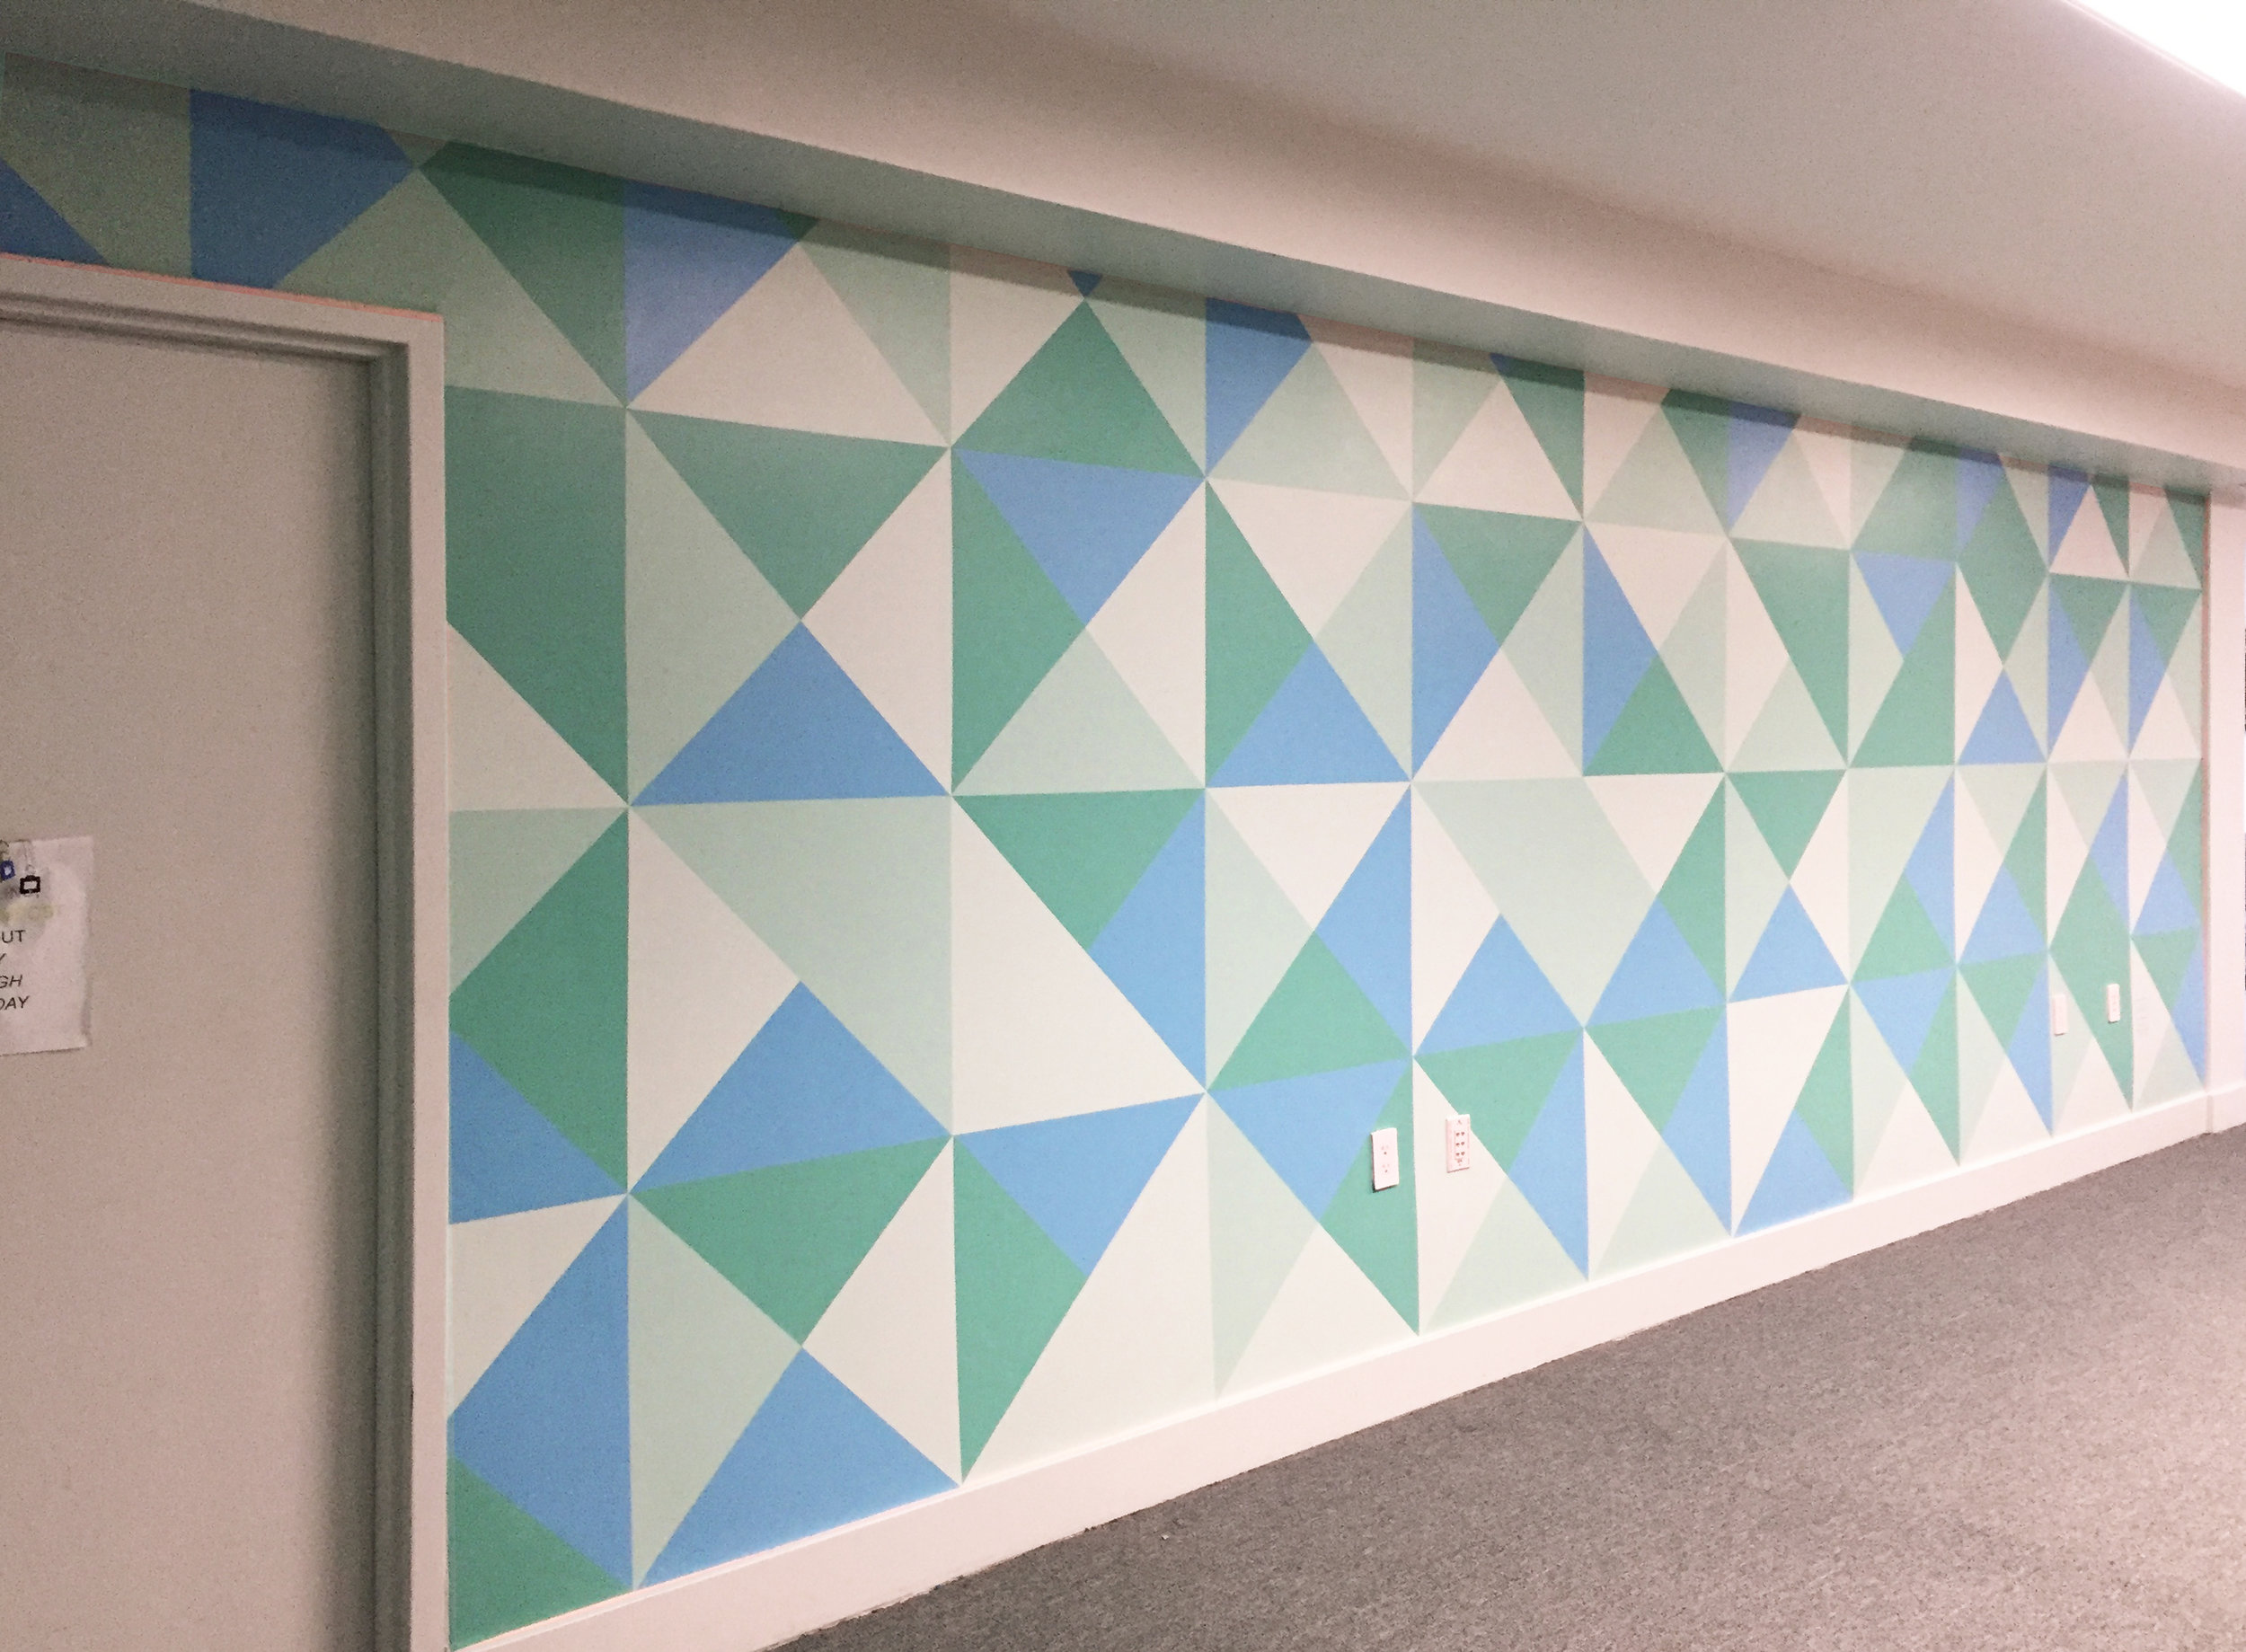 Office-commercial-mural-san-francisco-eden-wall-and-wall-mural-company_002.jpg